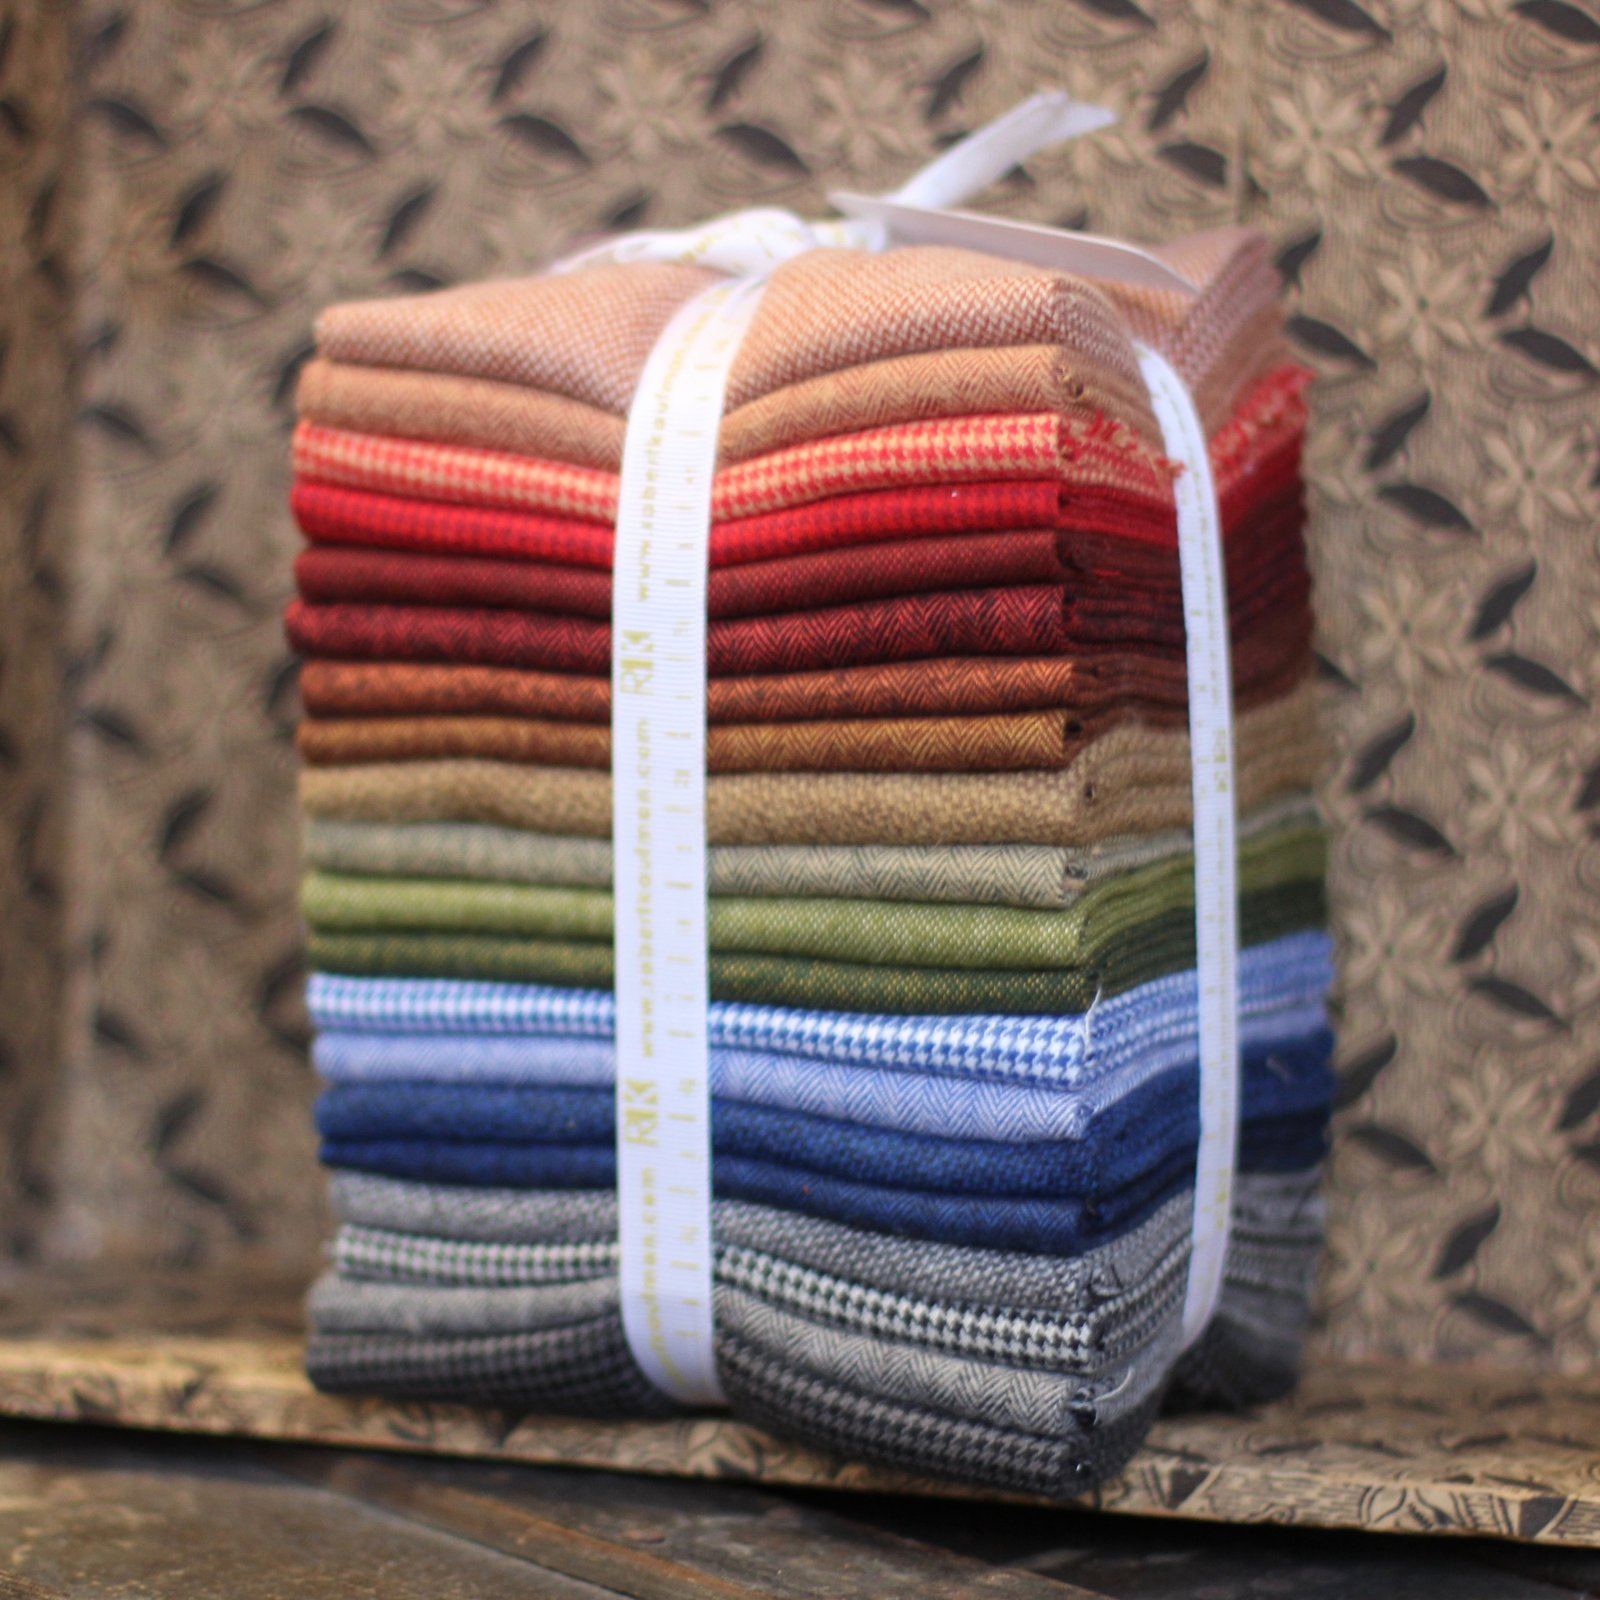 Shetland Flannel - 20 pc. Fat Quarter Bundle